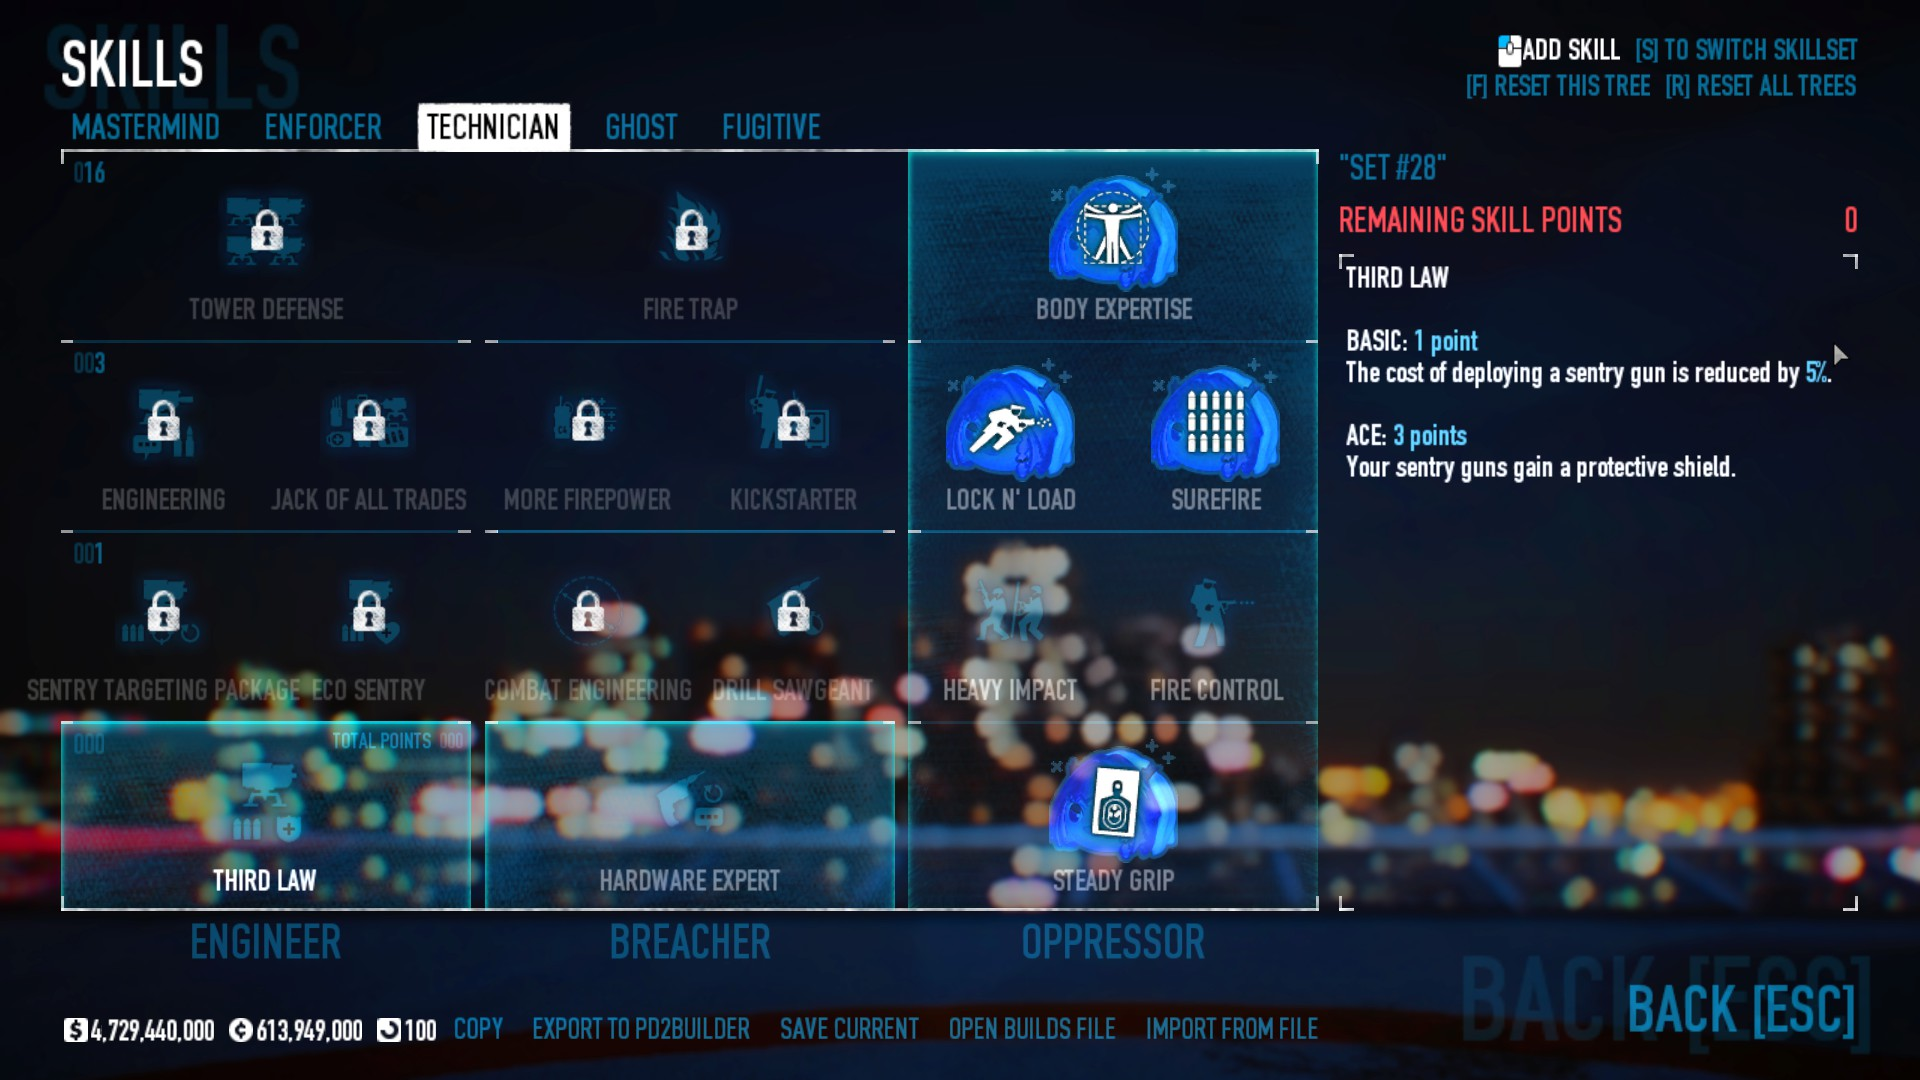 PAYDAY 2 - DSOD No DLC Build + Weapons Attachments & Class - Technician Skills - A2CD283